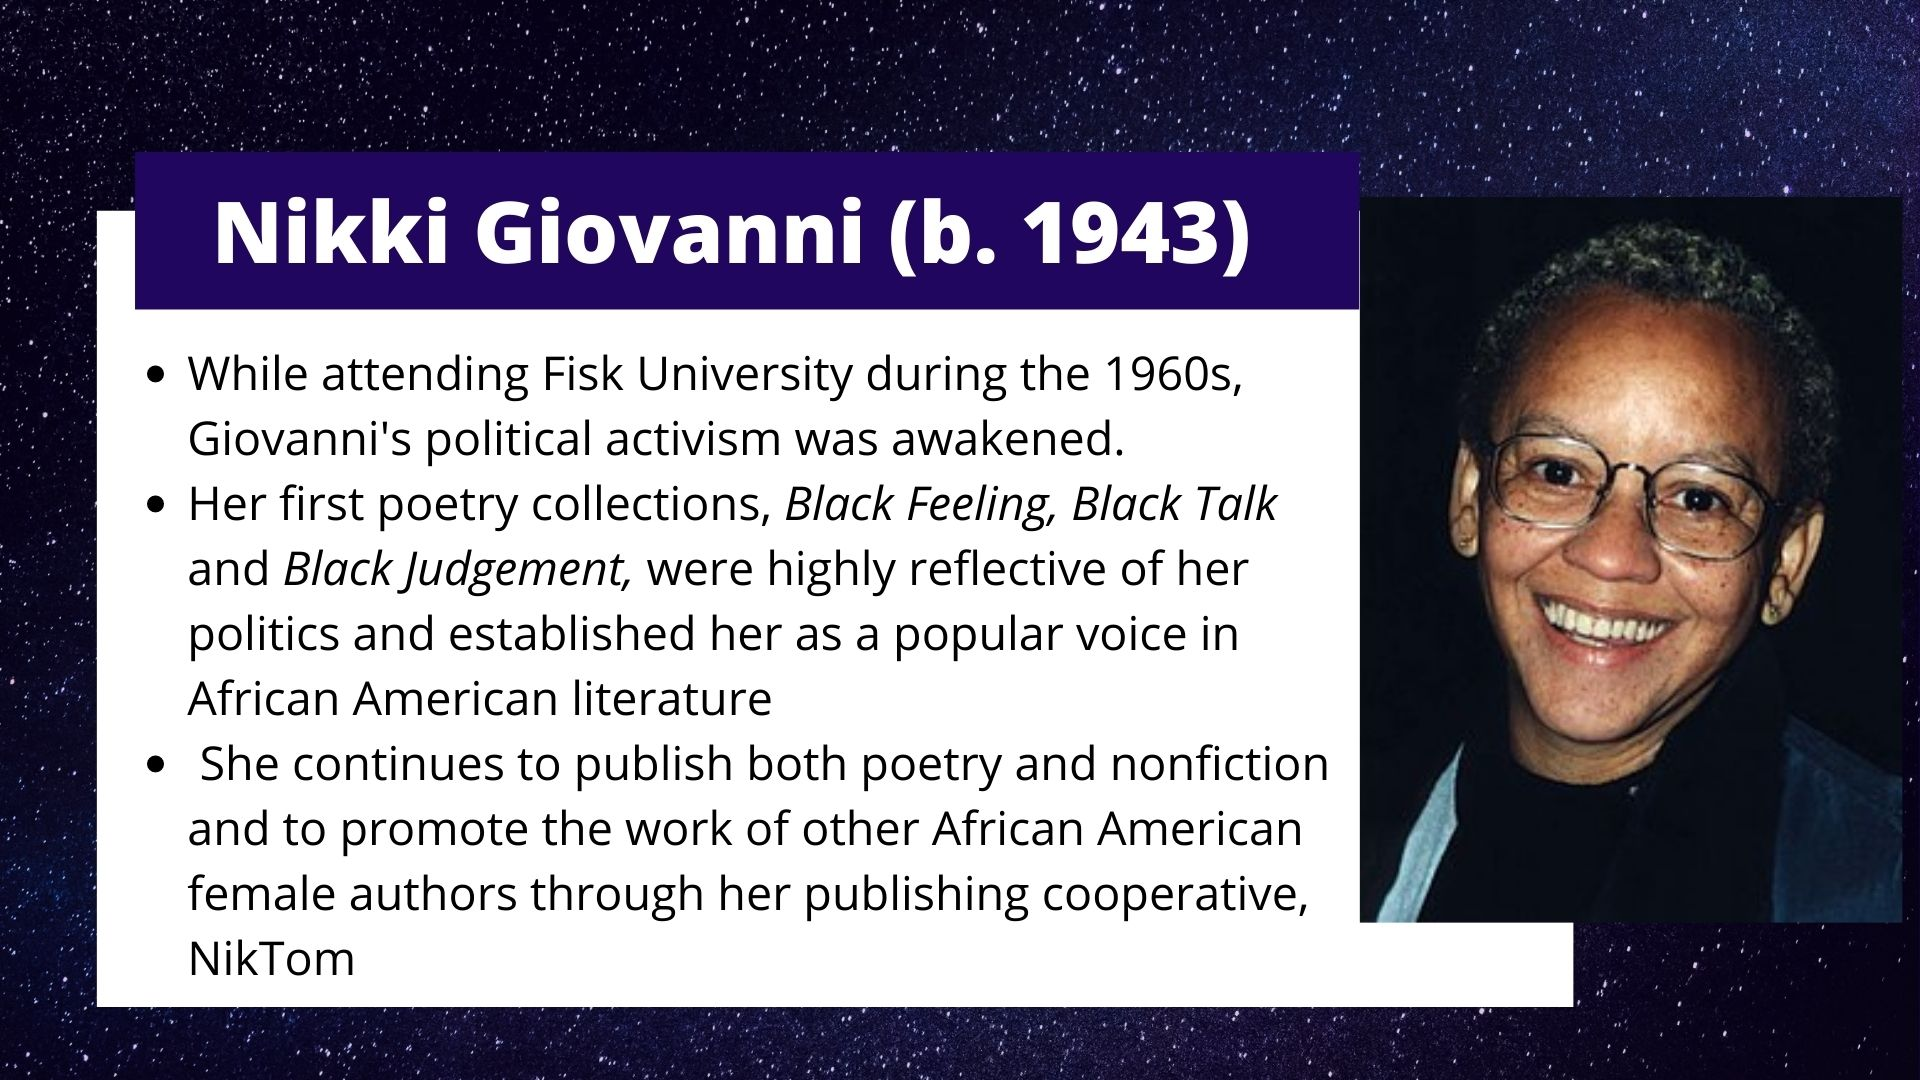 Nikki Giovanni (b. 1943) While attending Fisk University during the 1960s, Giovanni's political activism was awakened.  Her first poetry collections, Black Feeling, Black Talk and Black Judgement, were highly reflective of her politics and established her as a popular voice in African American literature  She continues to publish both poetry and nonfiction and to promote the work of other African American female authors through her publishing cooperative, NikTom